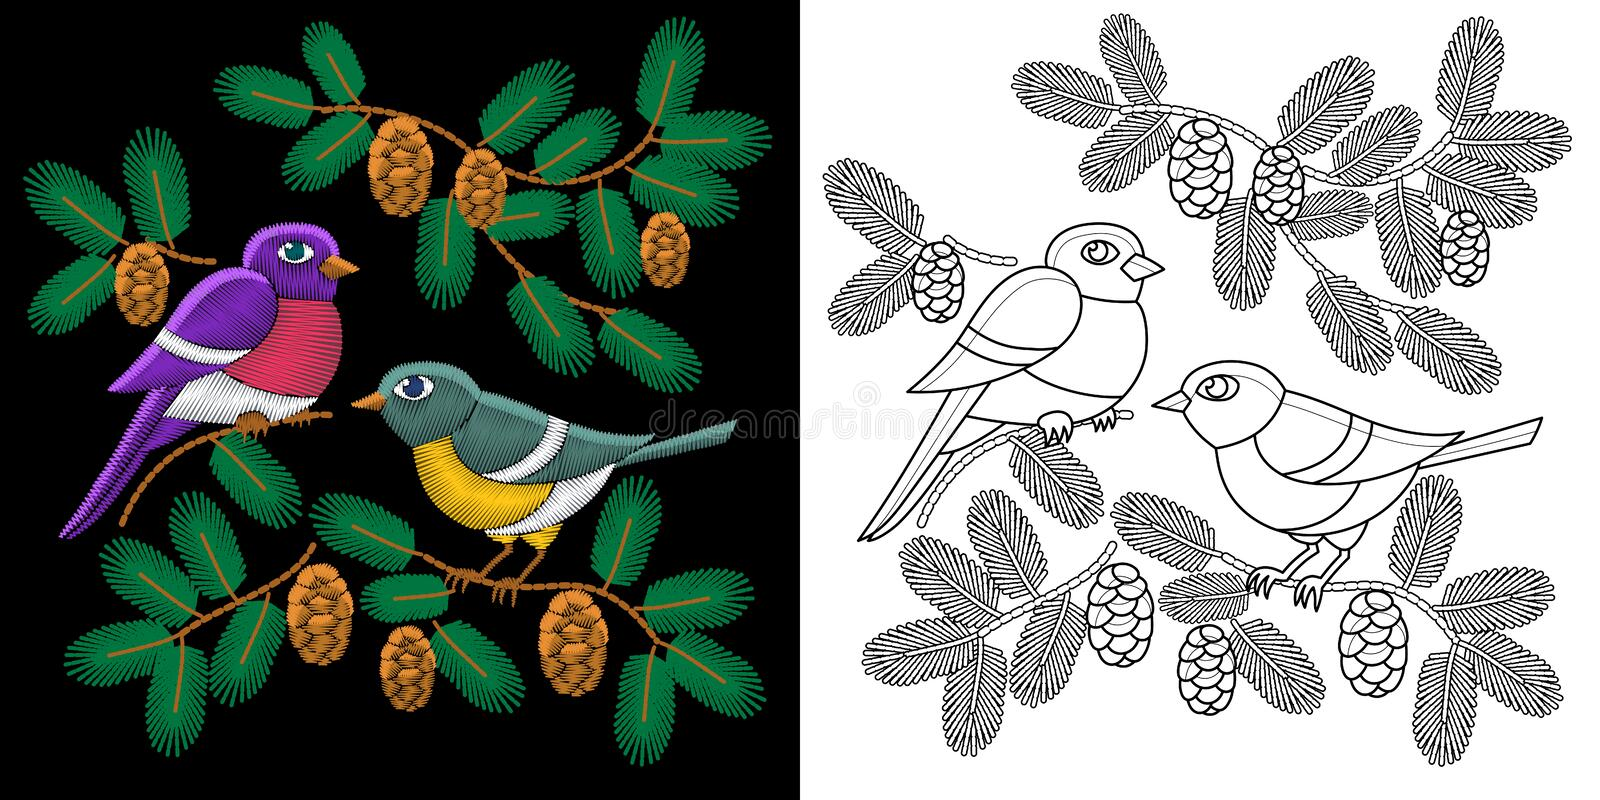 Embroidery birds design stock image